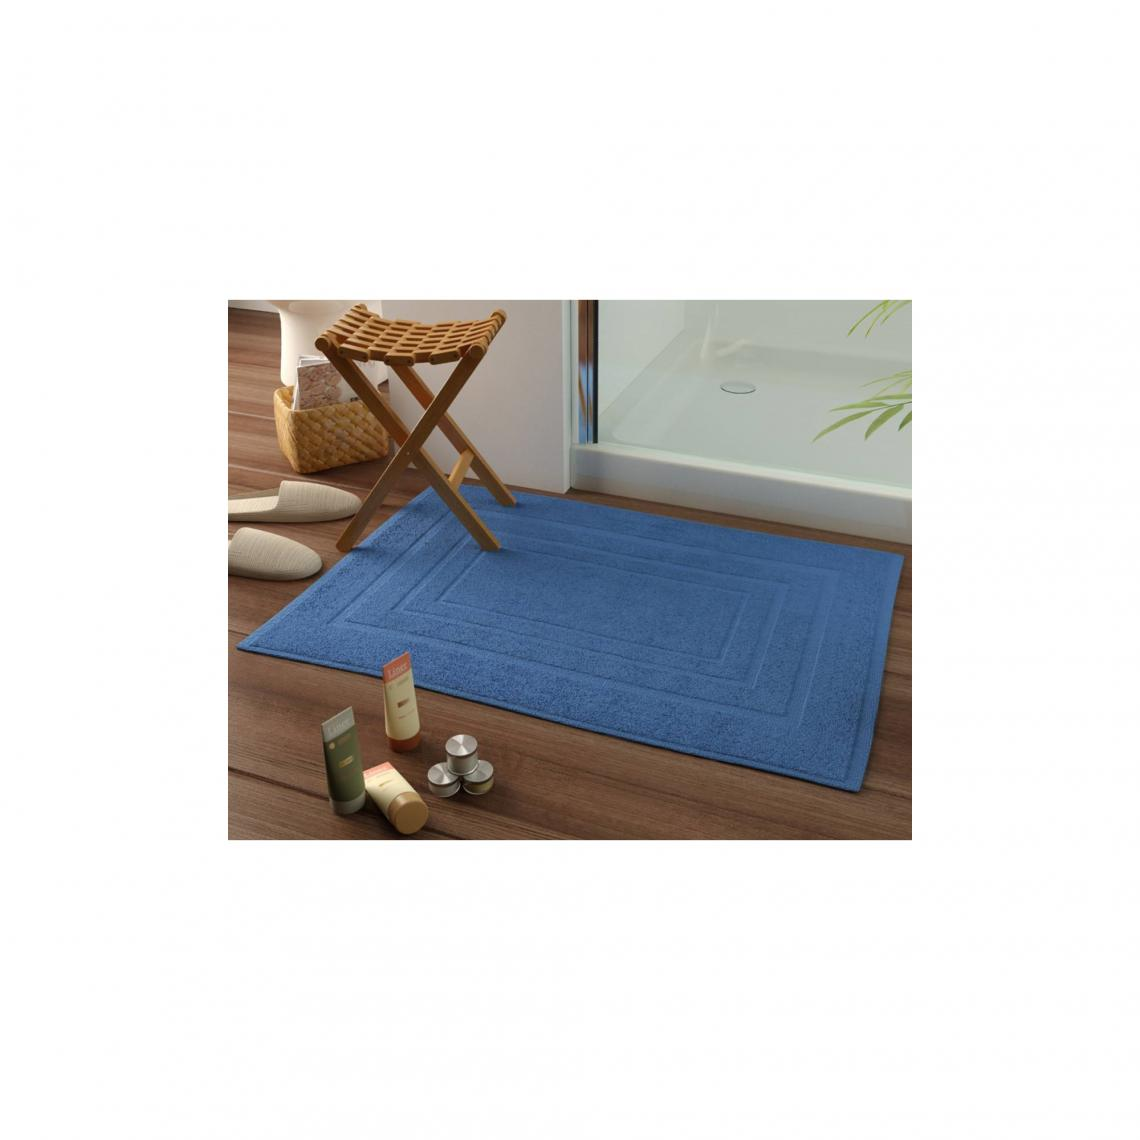 Tapis De Bain Laureat 1000gm2 Bleu 3 Suisses